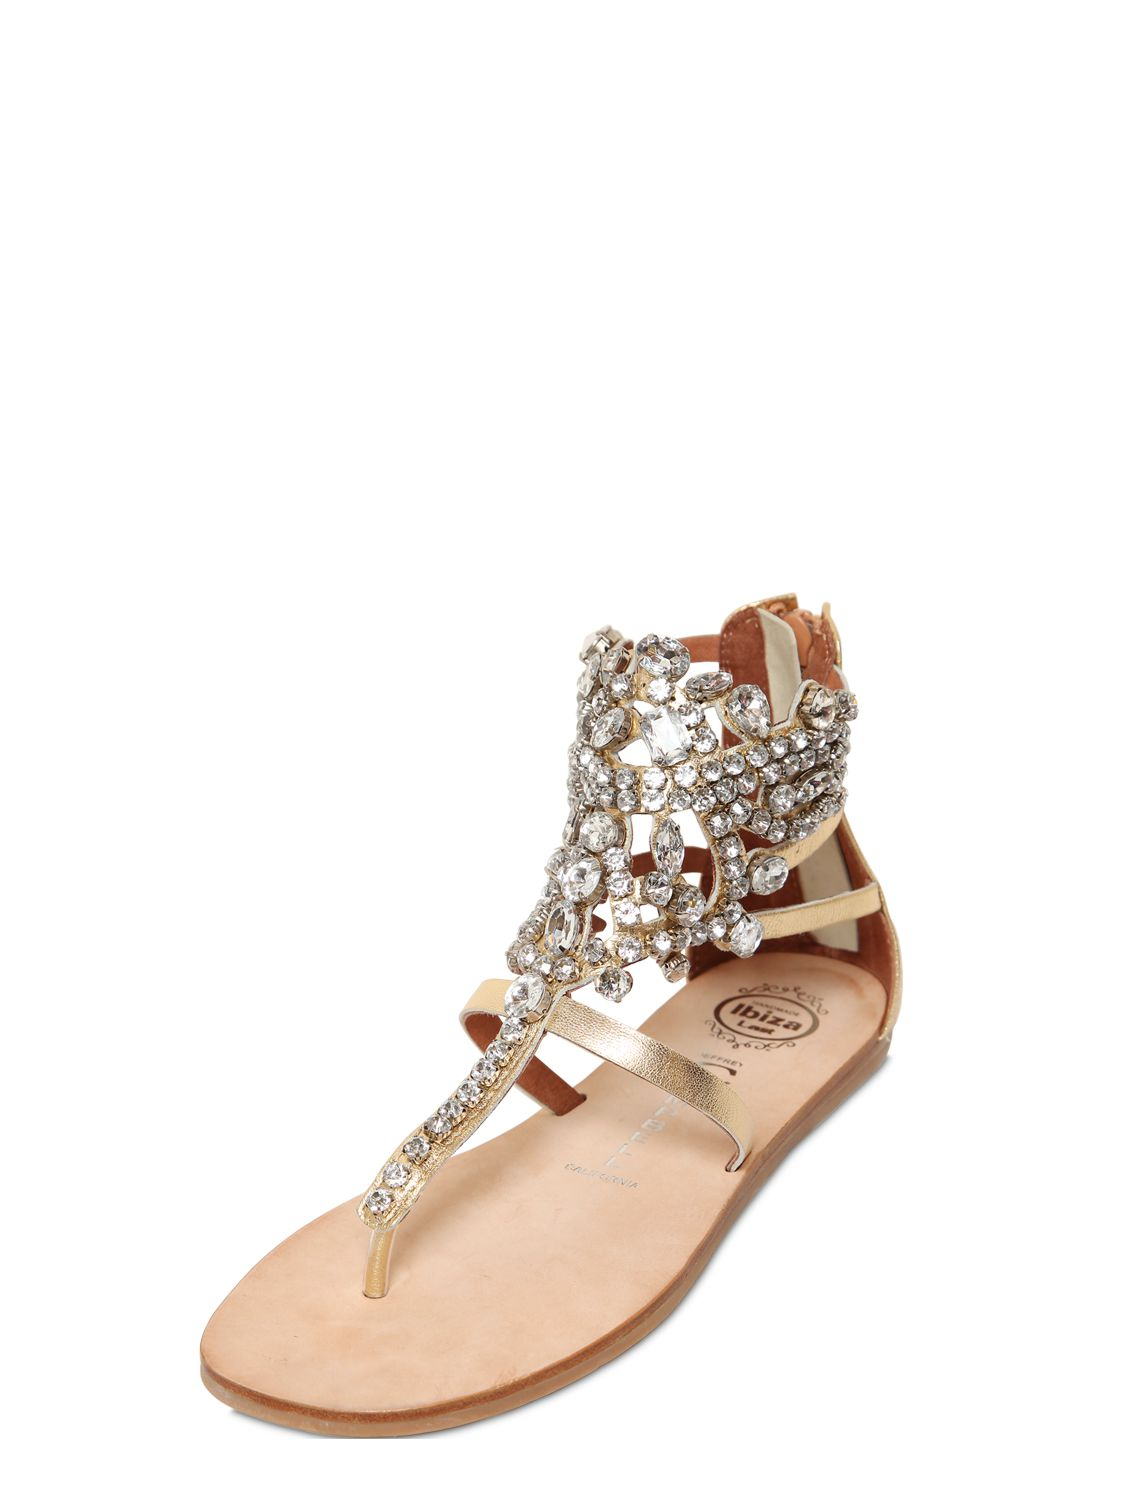 Jeffrey Campbell 10mm Jeweled Faux Leather Sandals In